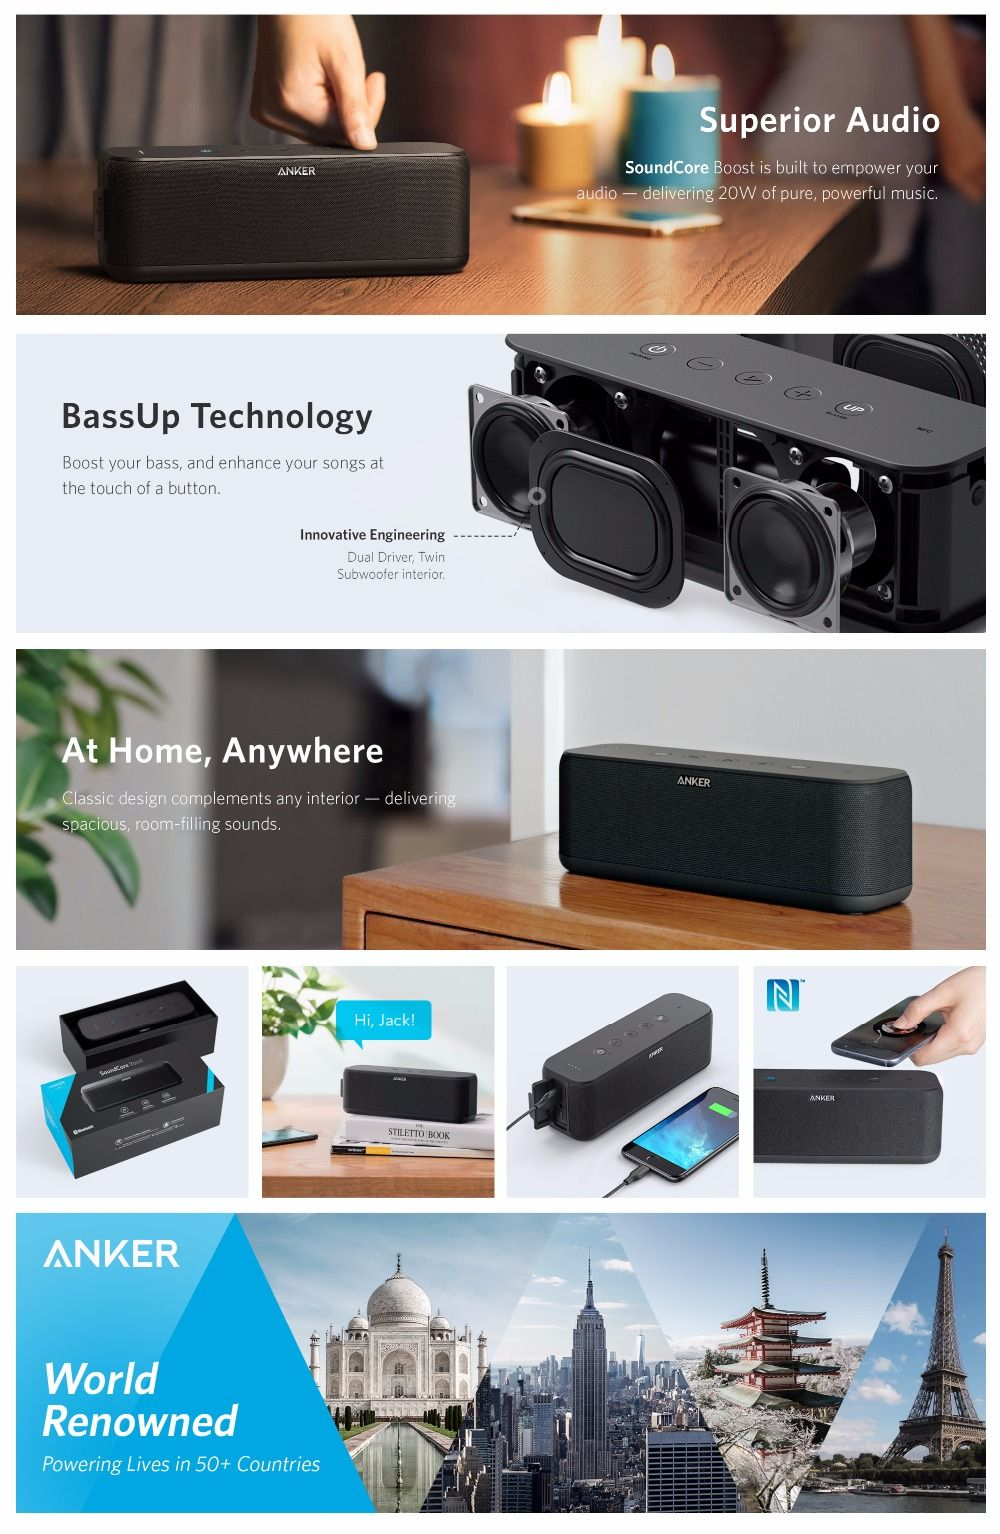 Anker SoundCore Boost 20W Bluetooth Speaker with BassUp